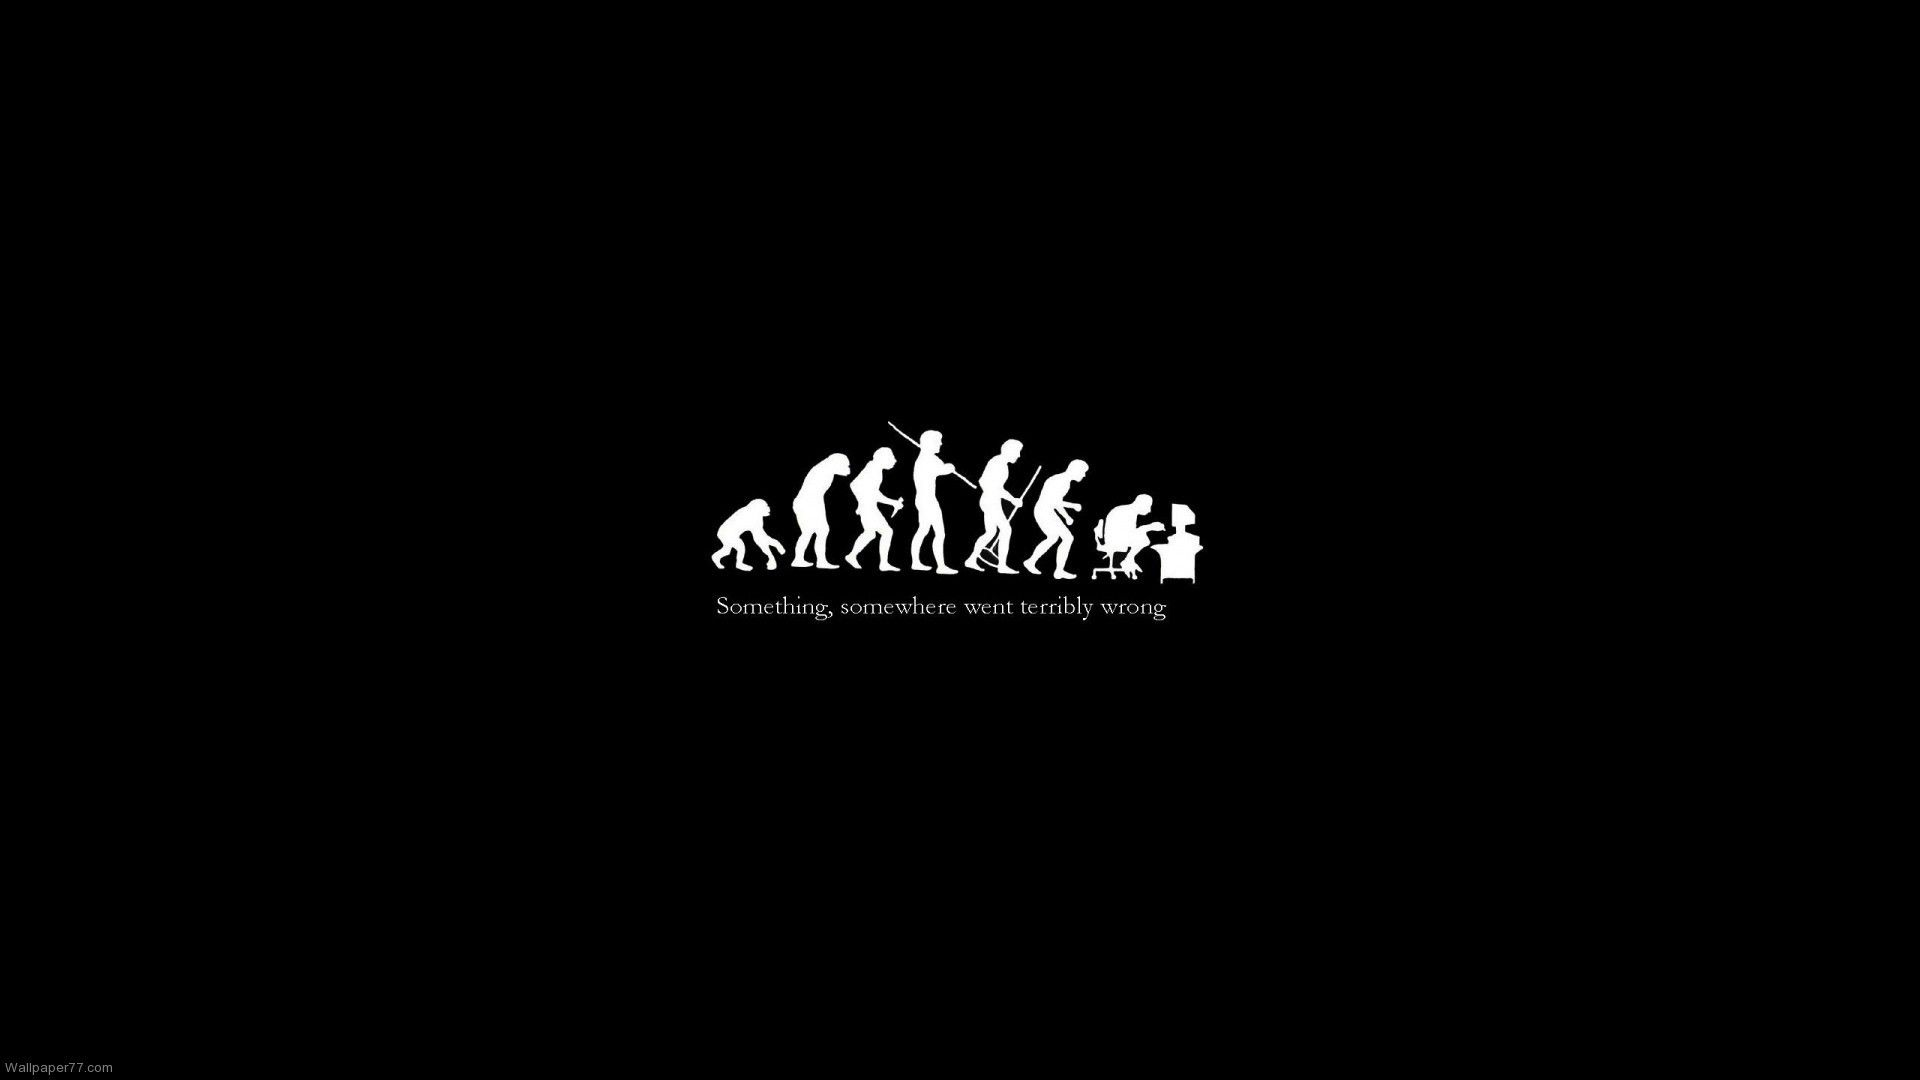 Funny Stickman Wallpapers 1920x1080 Windows 10 Funny Wallpapers Crazy Wallpaper Cool Wallpaper